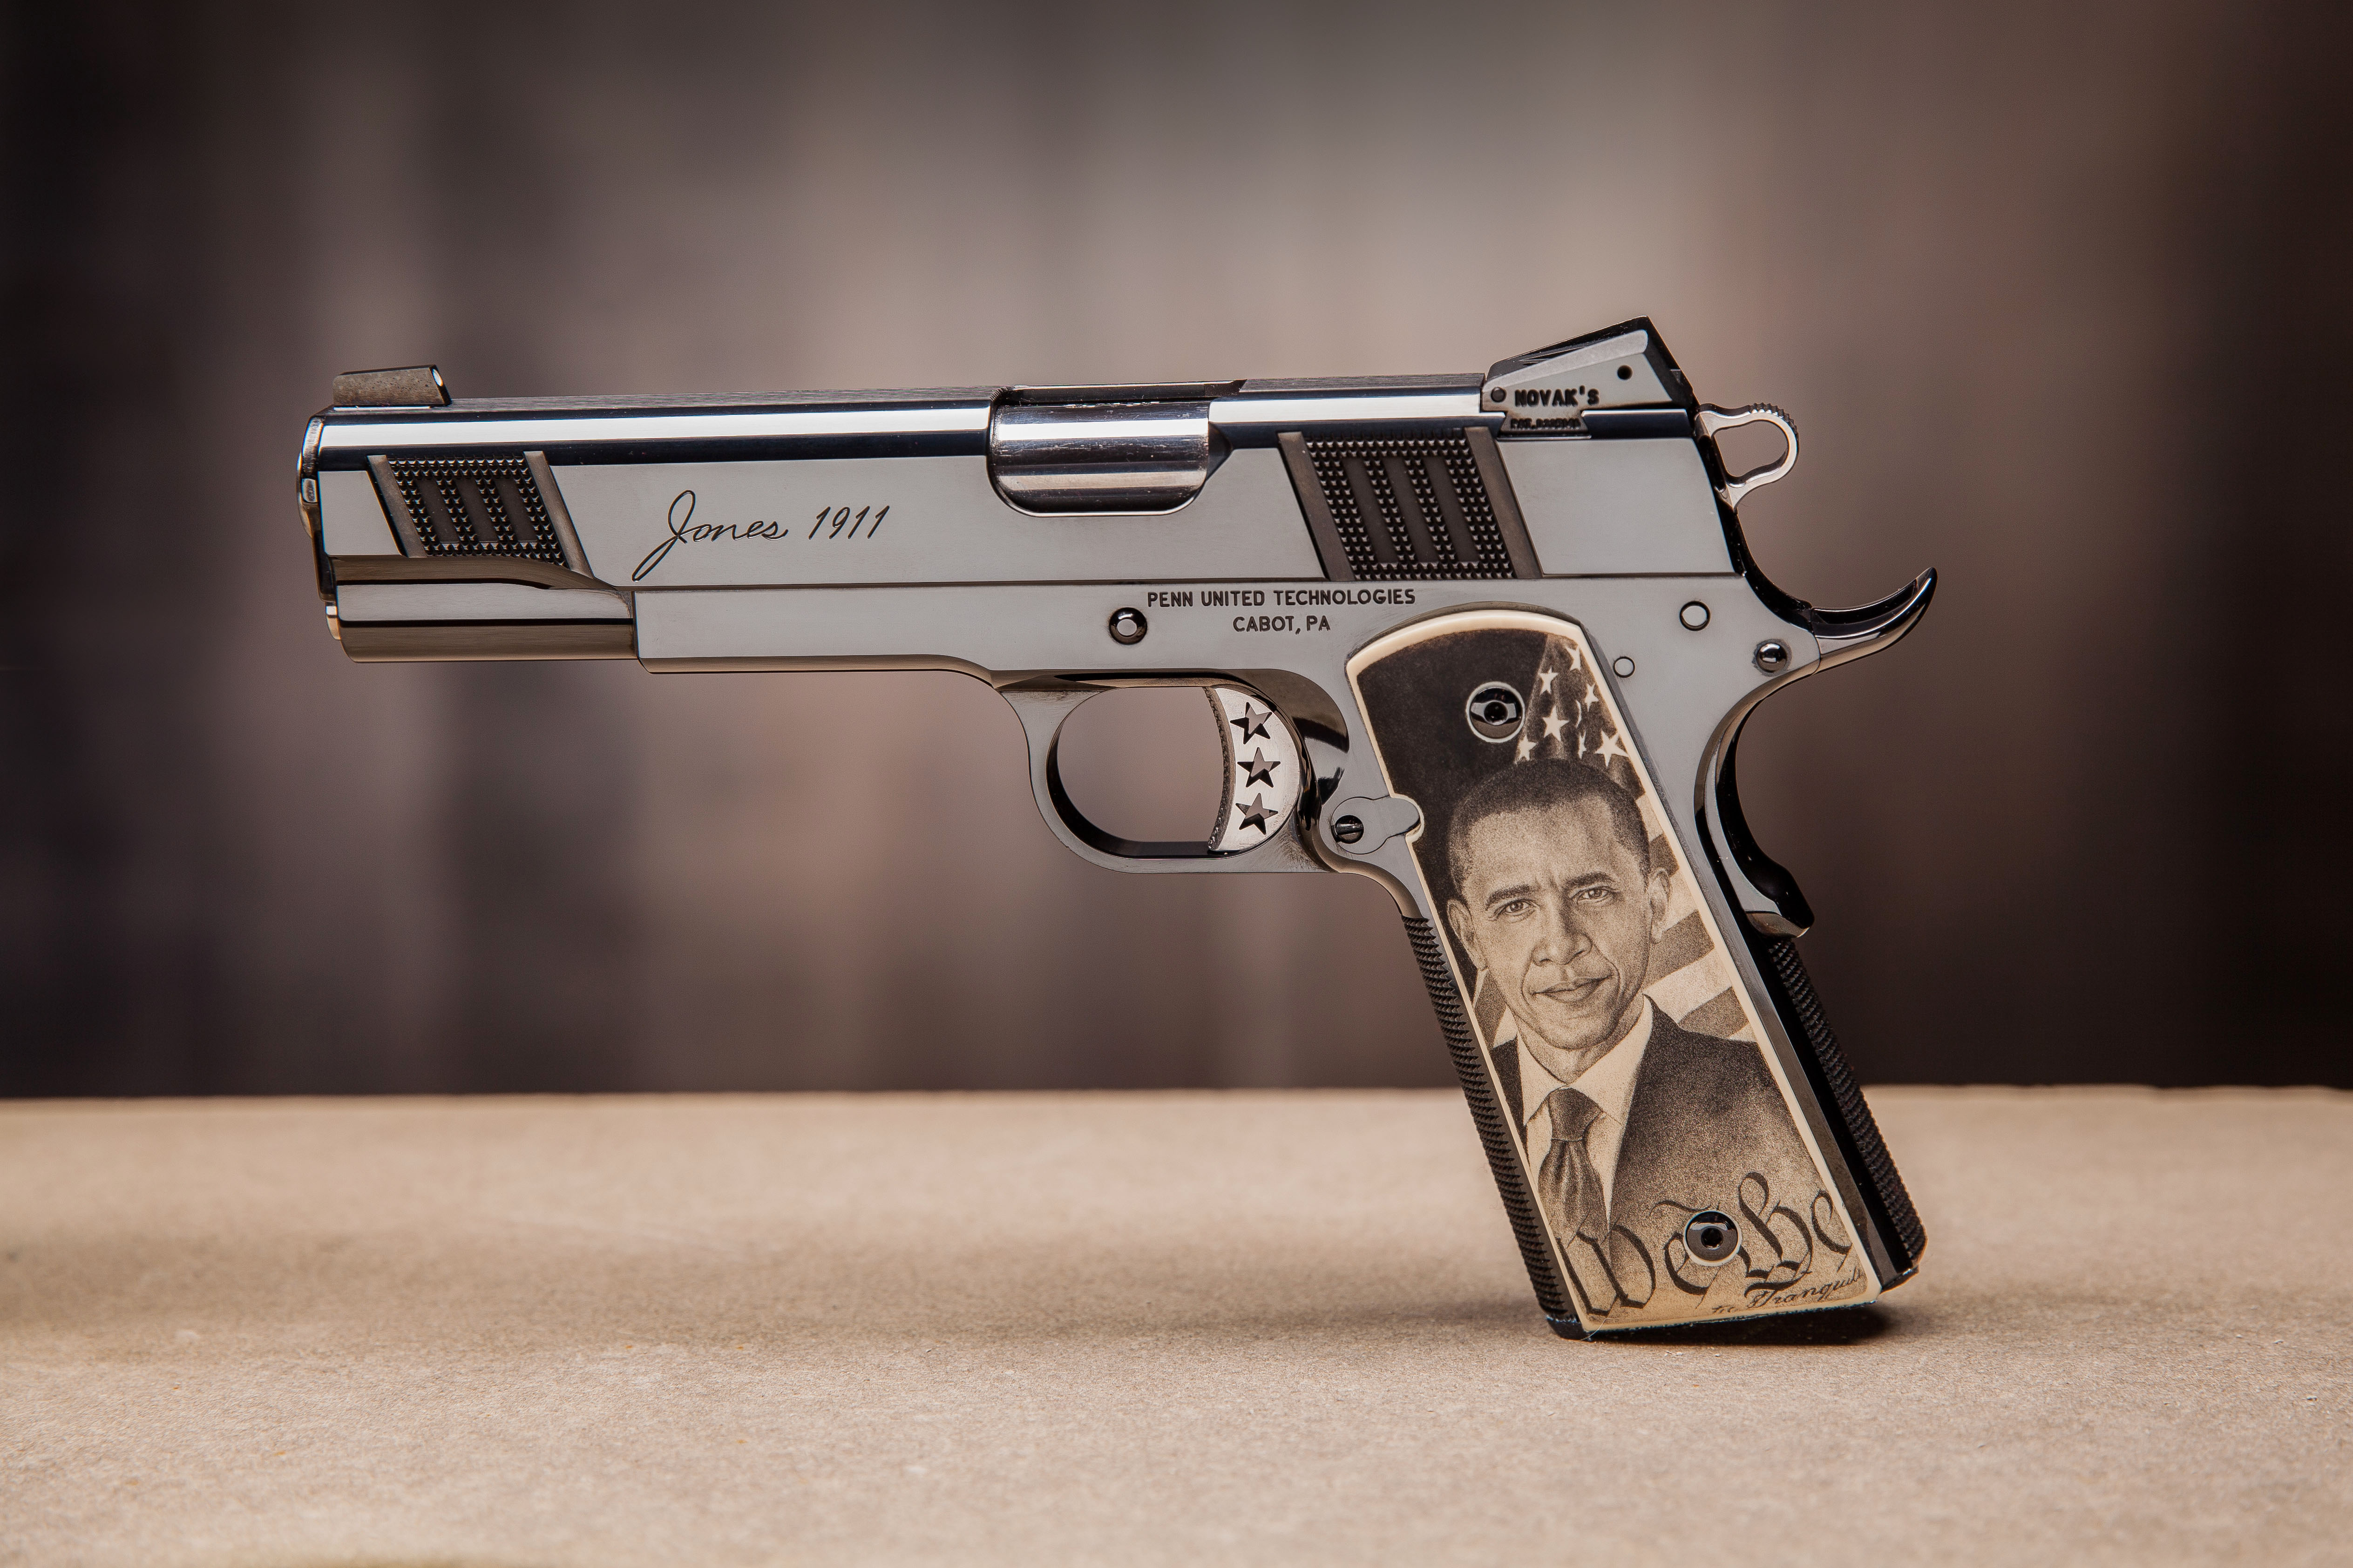 Pistol Set Featuring President Obama And Piers Morgan